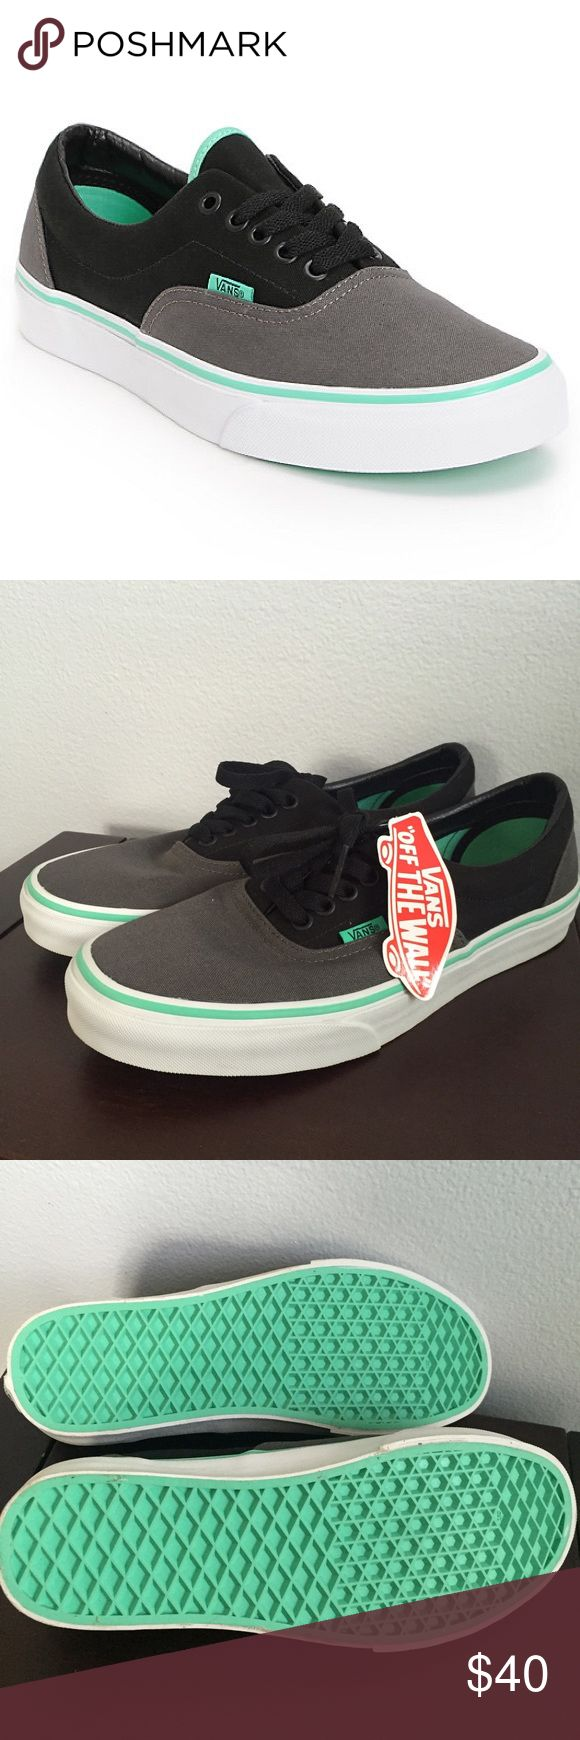 NWT Vans Era Grey, Black, & Mint Green Skate Shoes These are the same shoes in my other listing!! Since they are unisex, I made this post reflecting the men's size as well. I do not have two available, only this one pair. Vans Shoes Sneakers